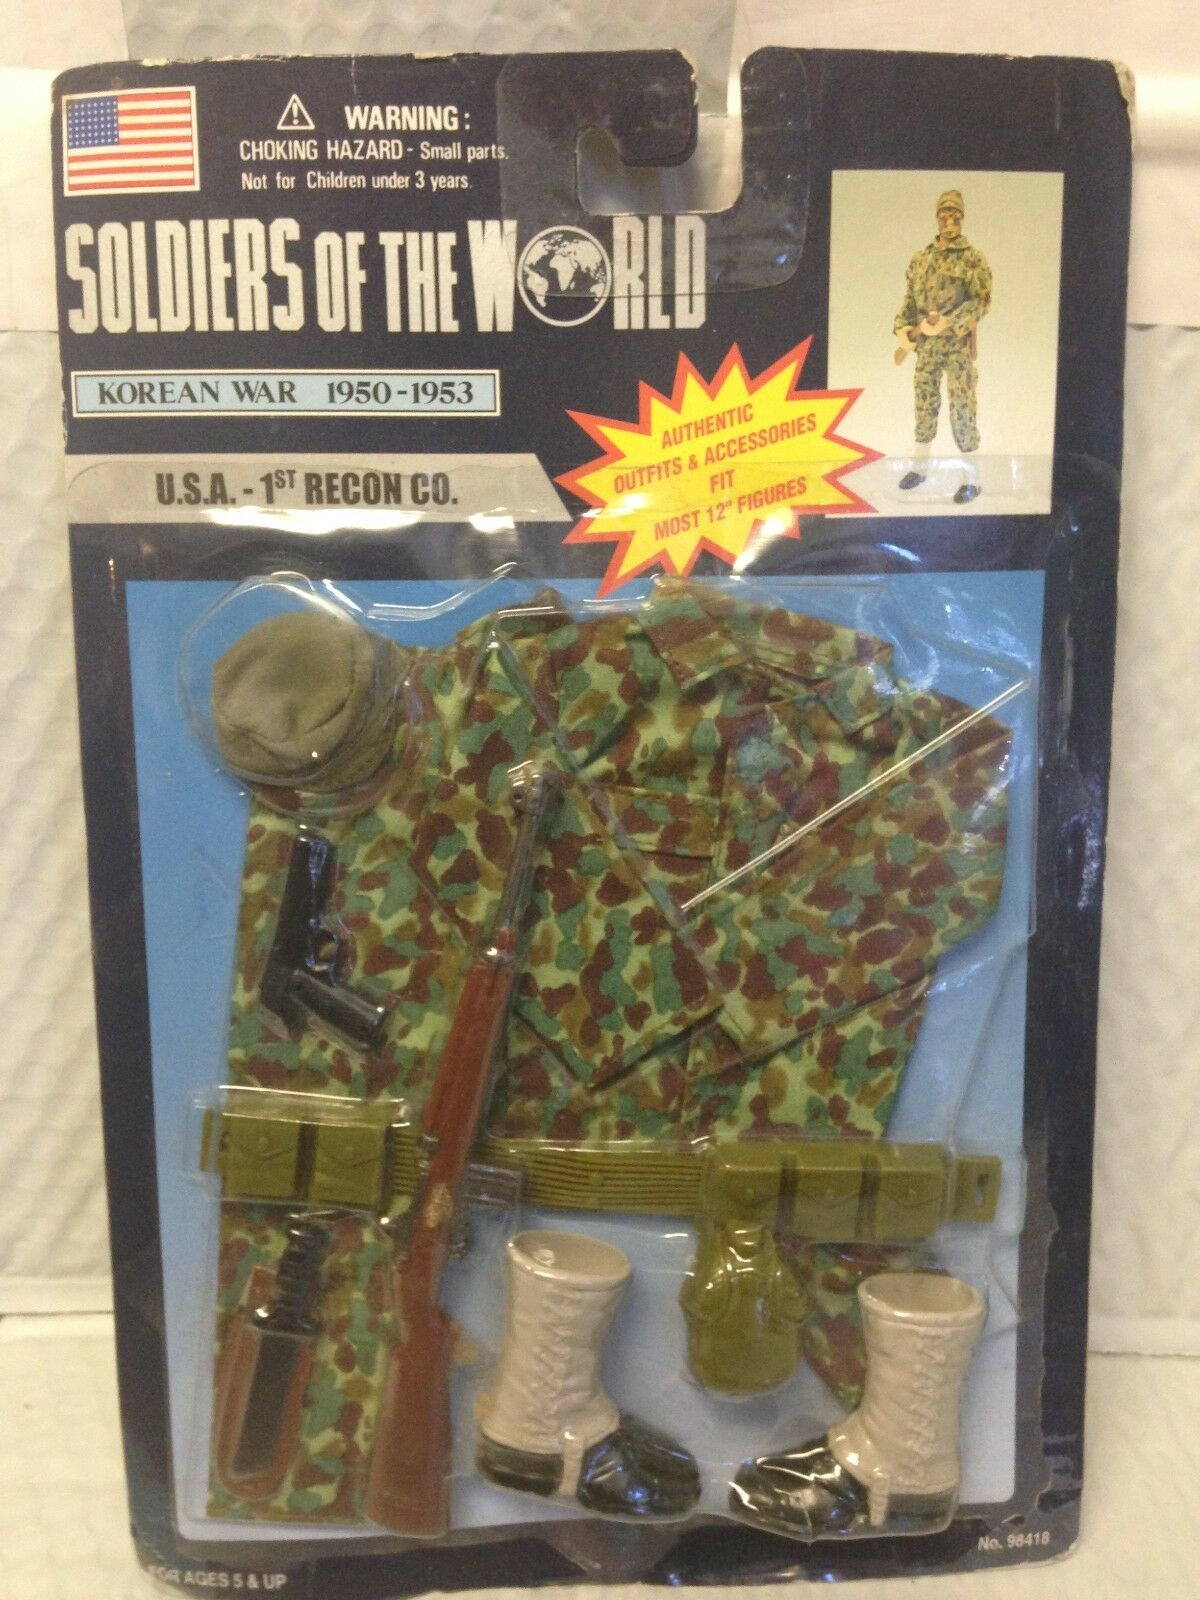 SOLDIER OF THE WORLD MILITARY - Gear - Korean War - USA 1st Recon Co.1950-53NEW